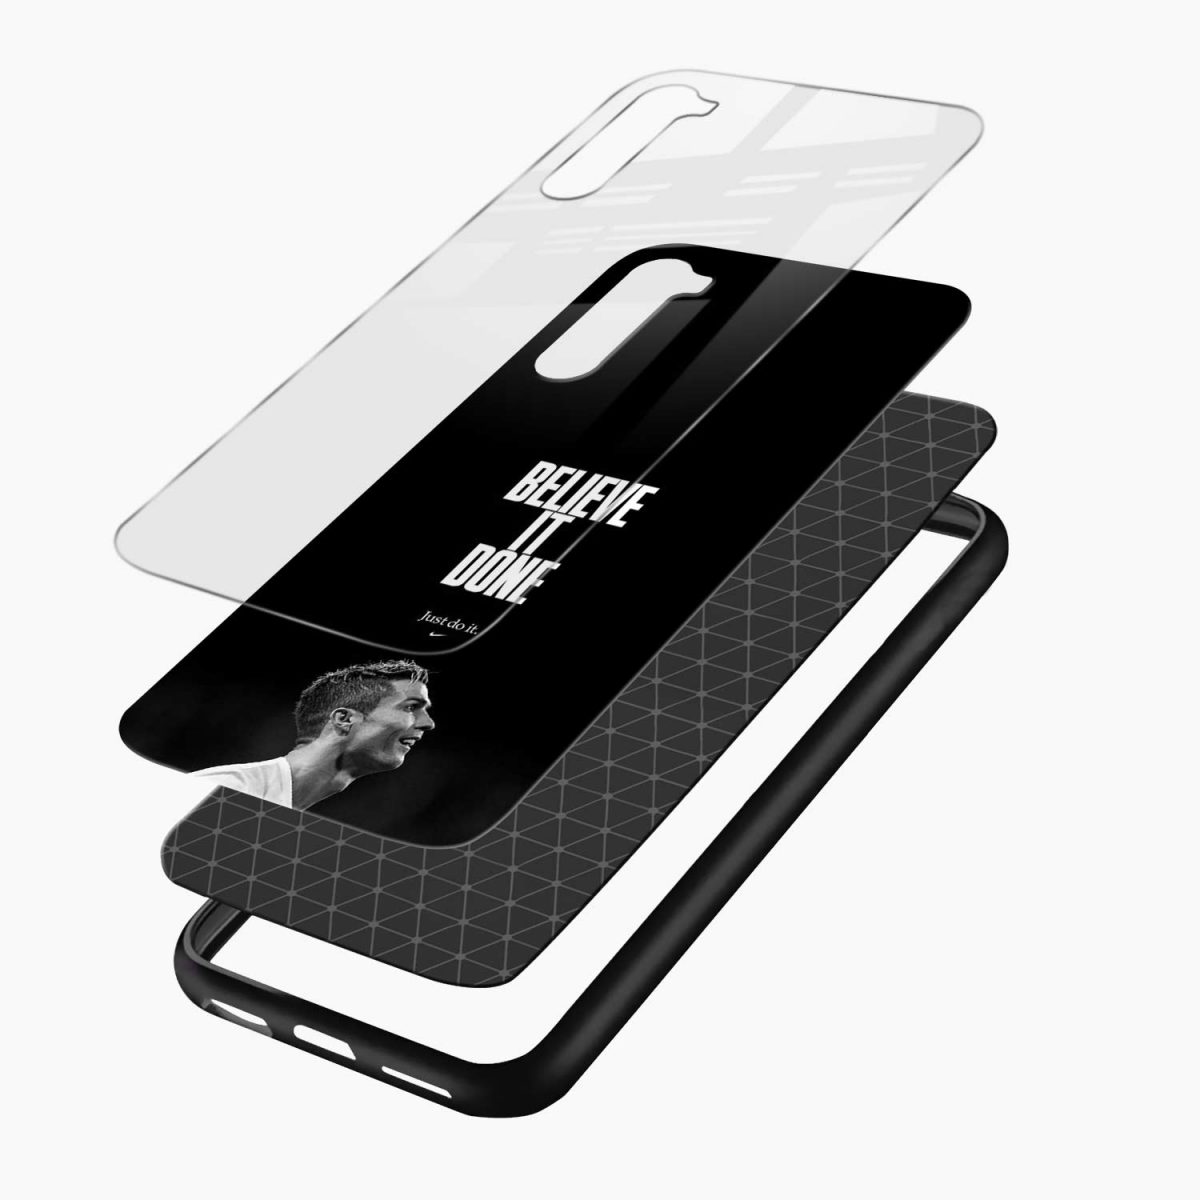 christiano ronaldo black white layers view oneplus nord back cover